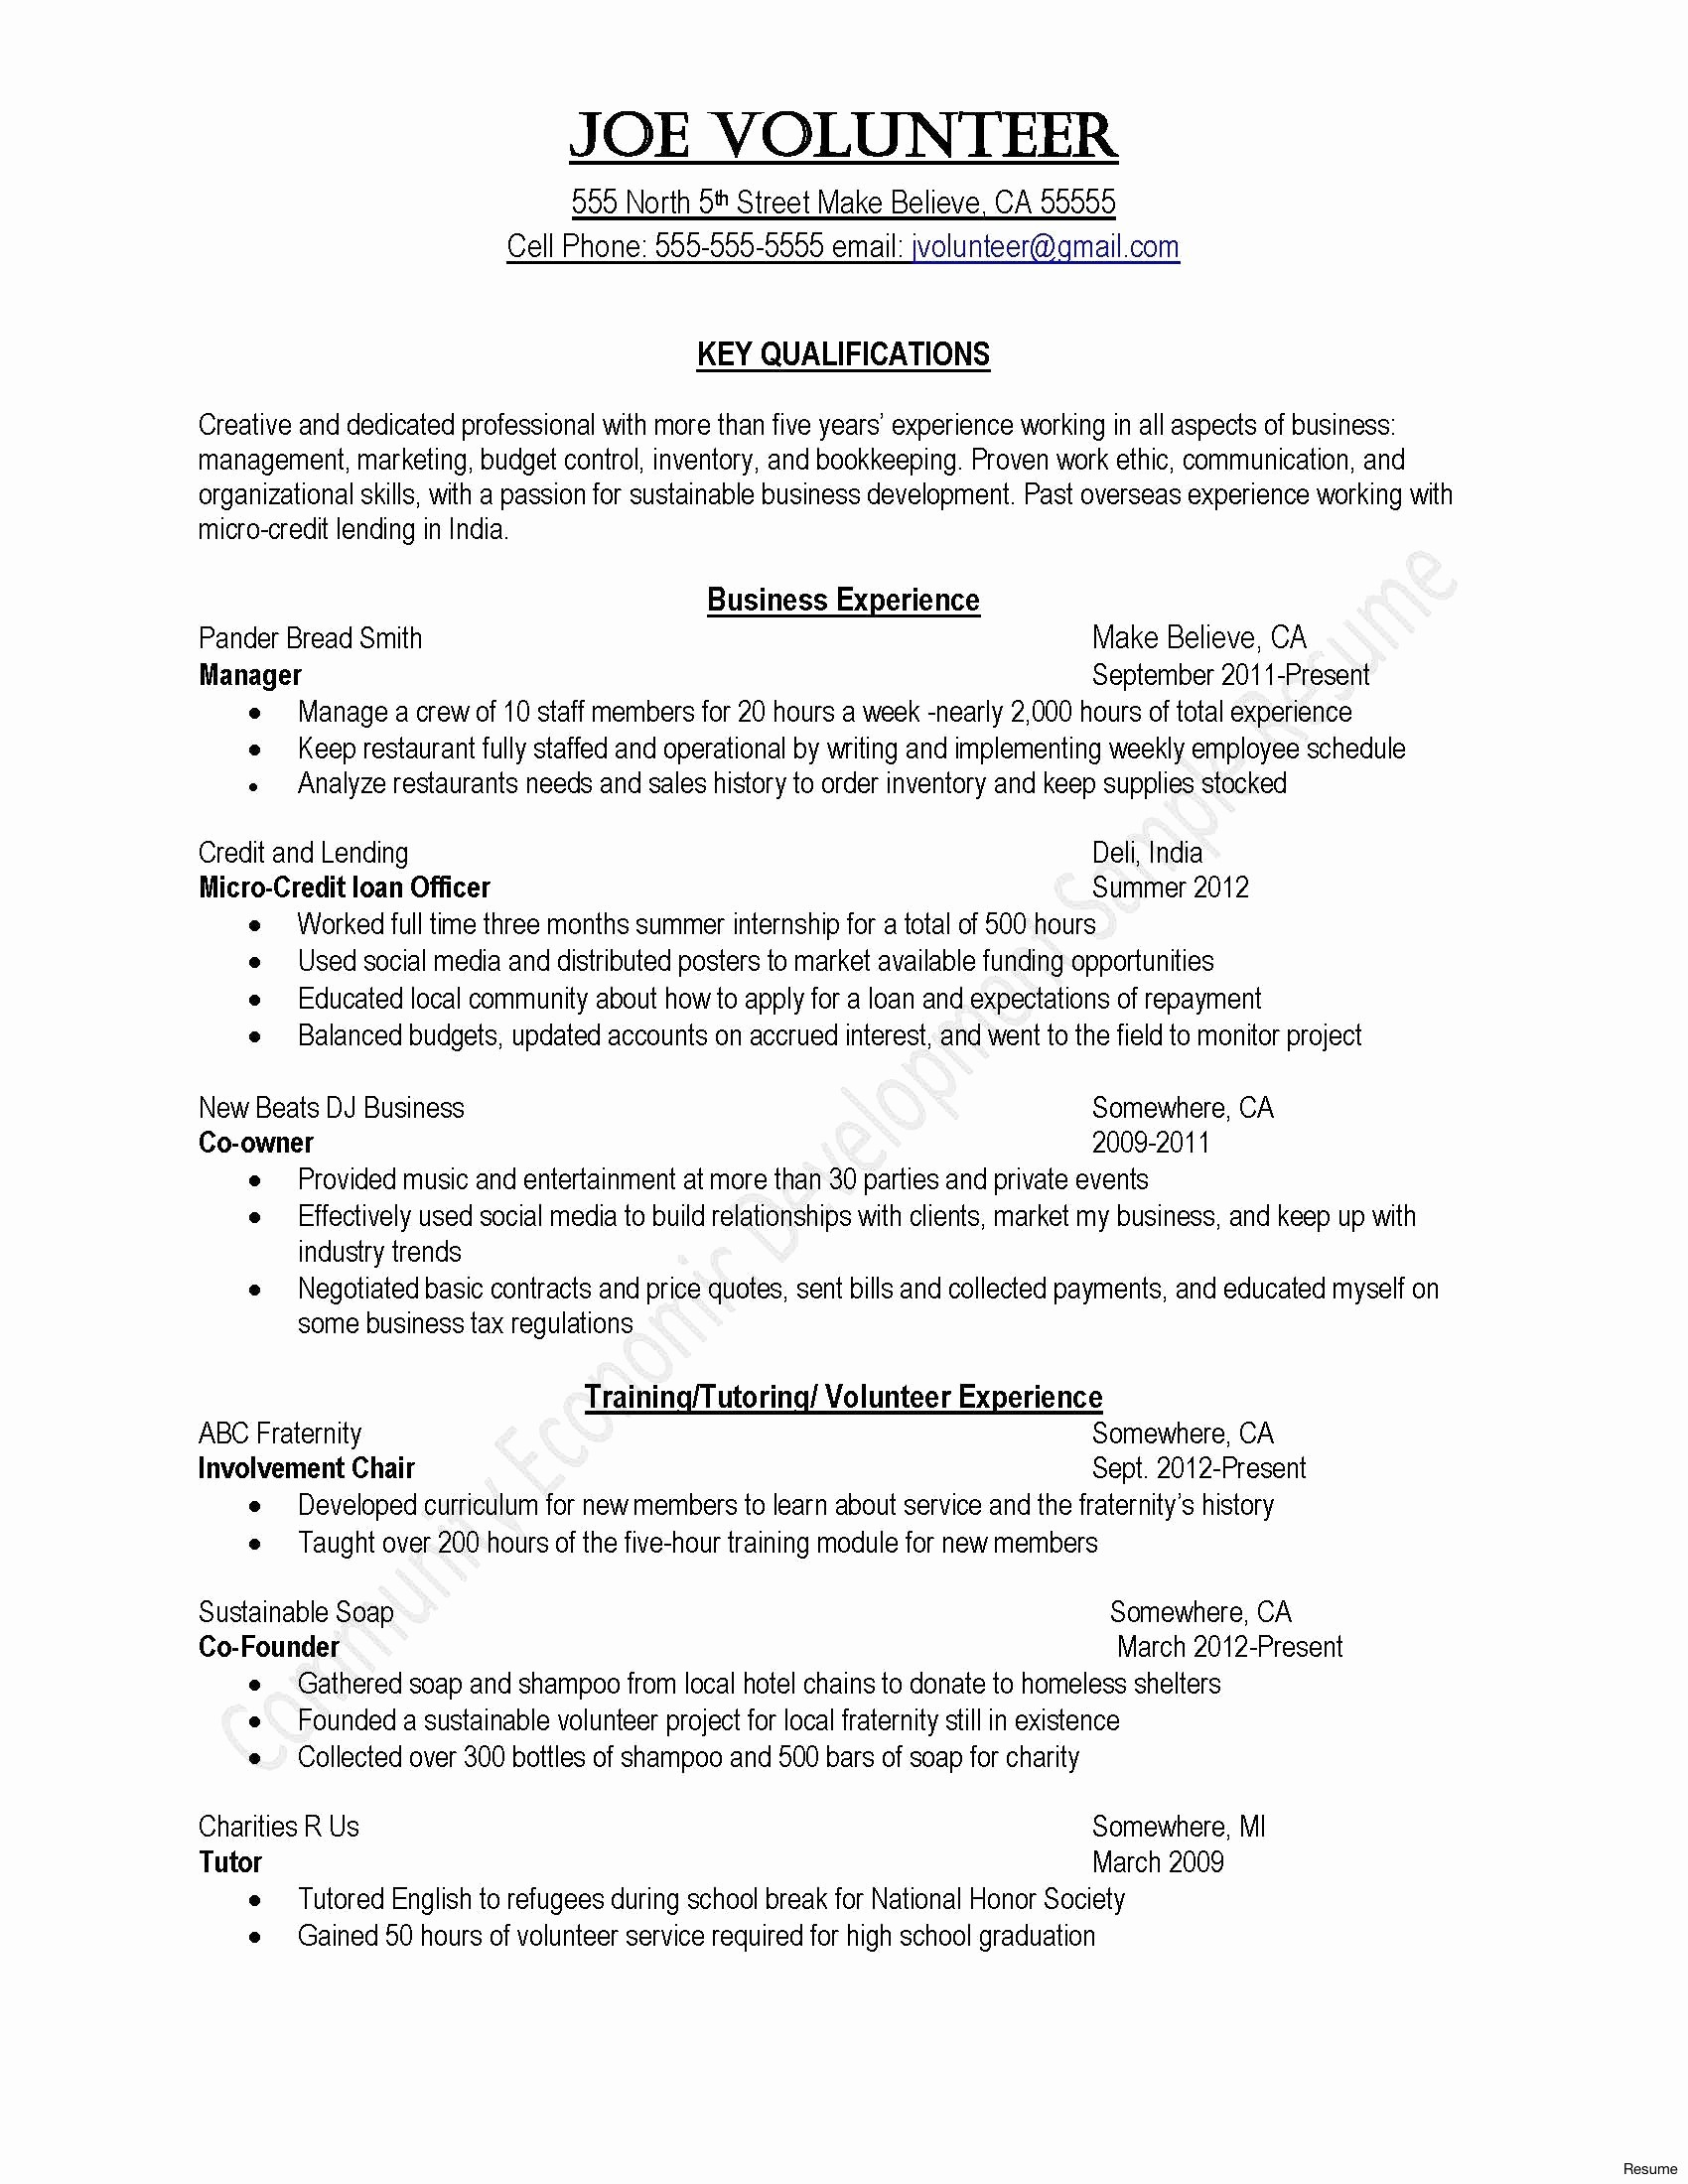 Grant Cover Letter Template - Application for Funding Letter Template Elegant Cover Letter